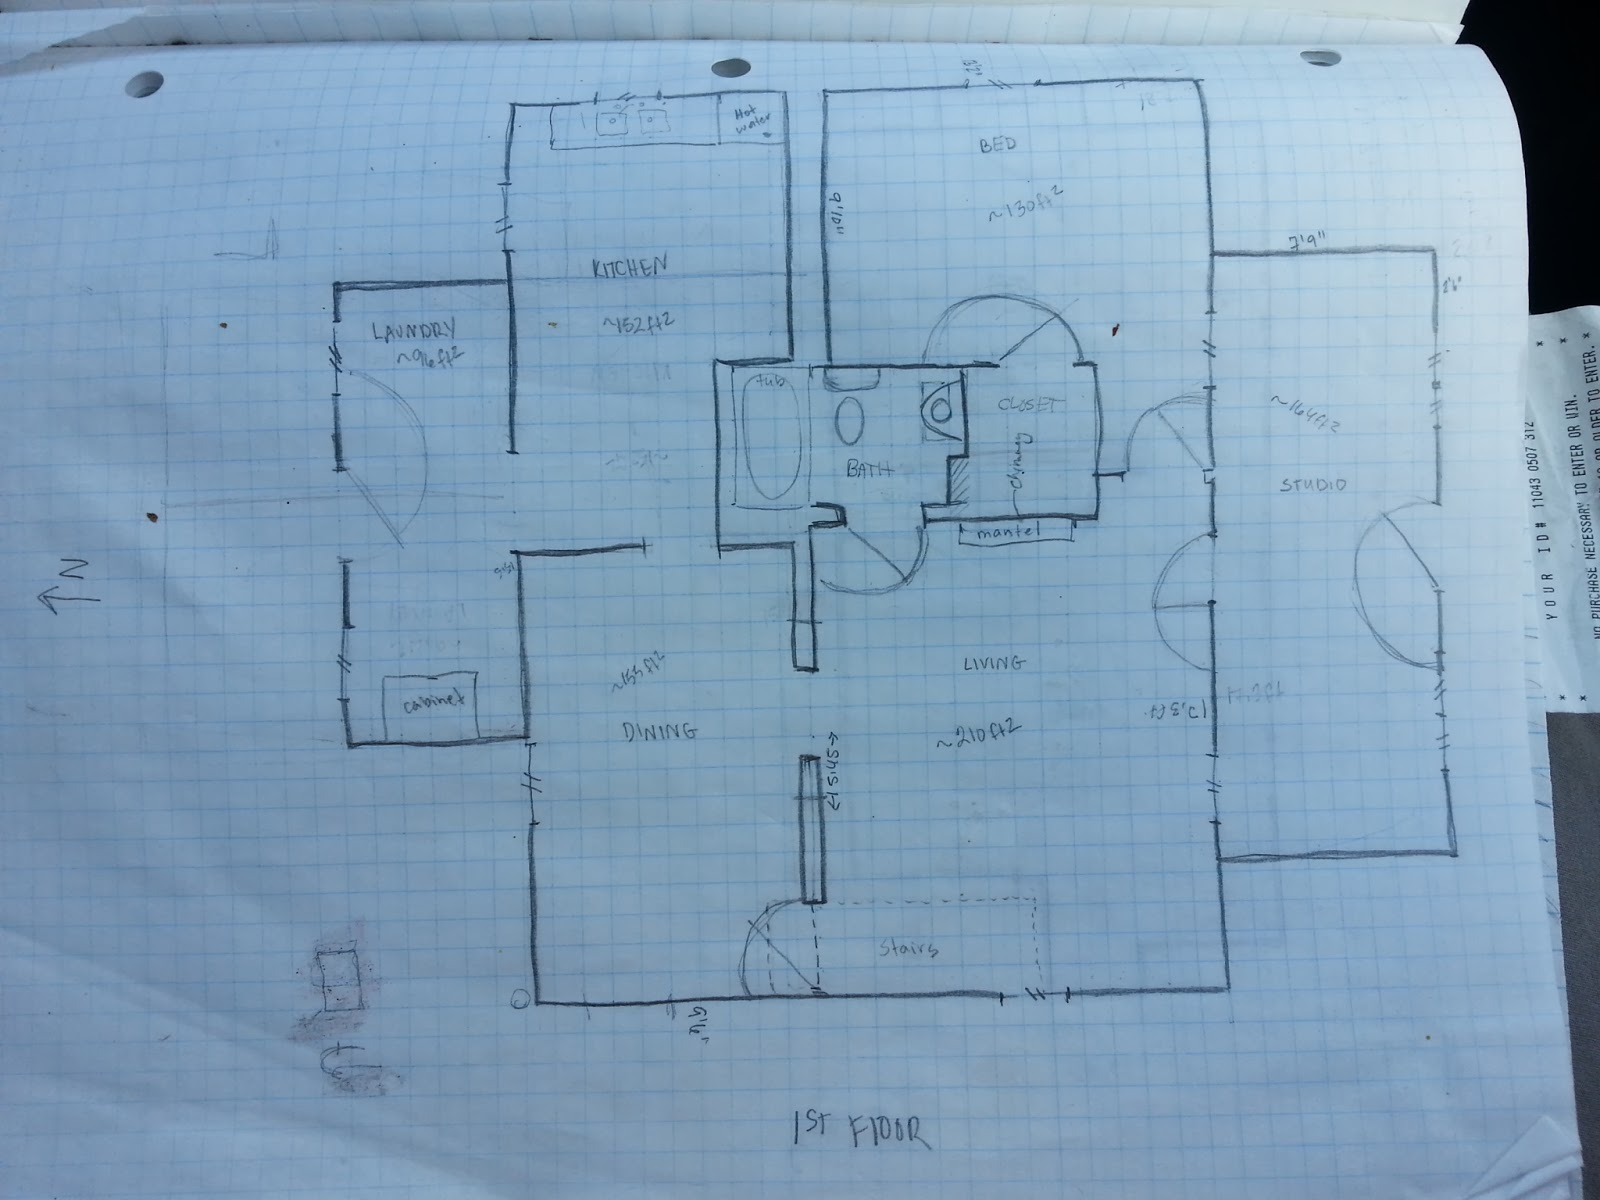 Drawn hosue graph paper Graph House Paper Our House